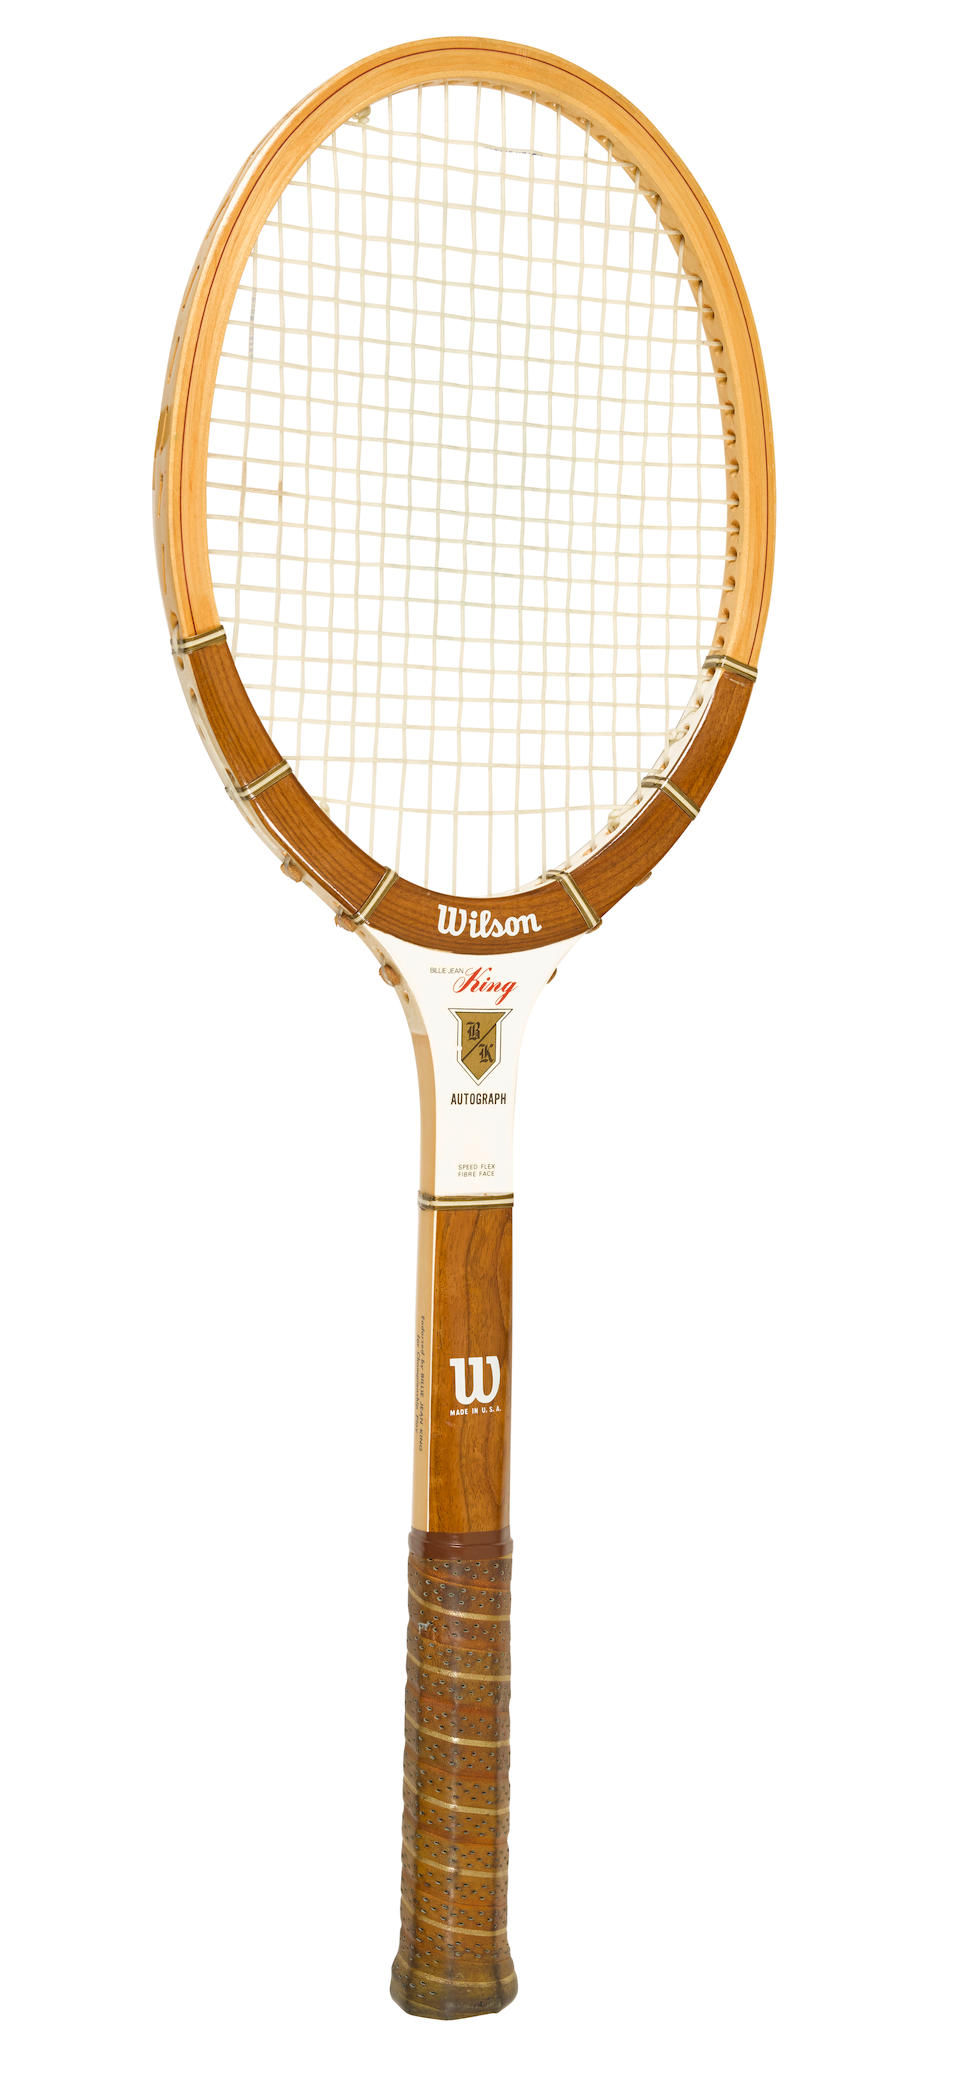 BATTLE OF THE SEXES: The tennis racquet used by Billie Jean King during her epochal match against Bobby Riggs, September 20, 1973.